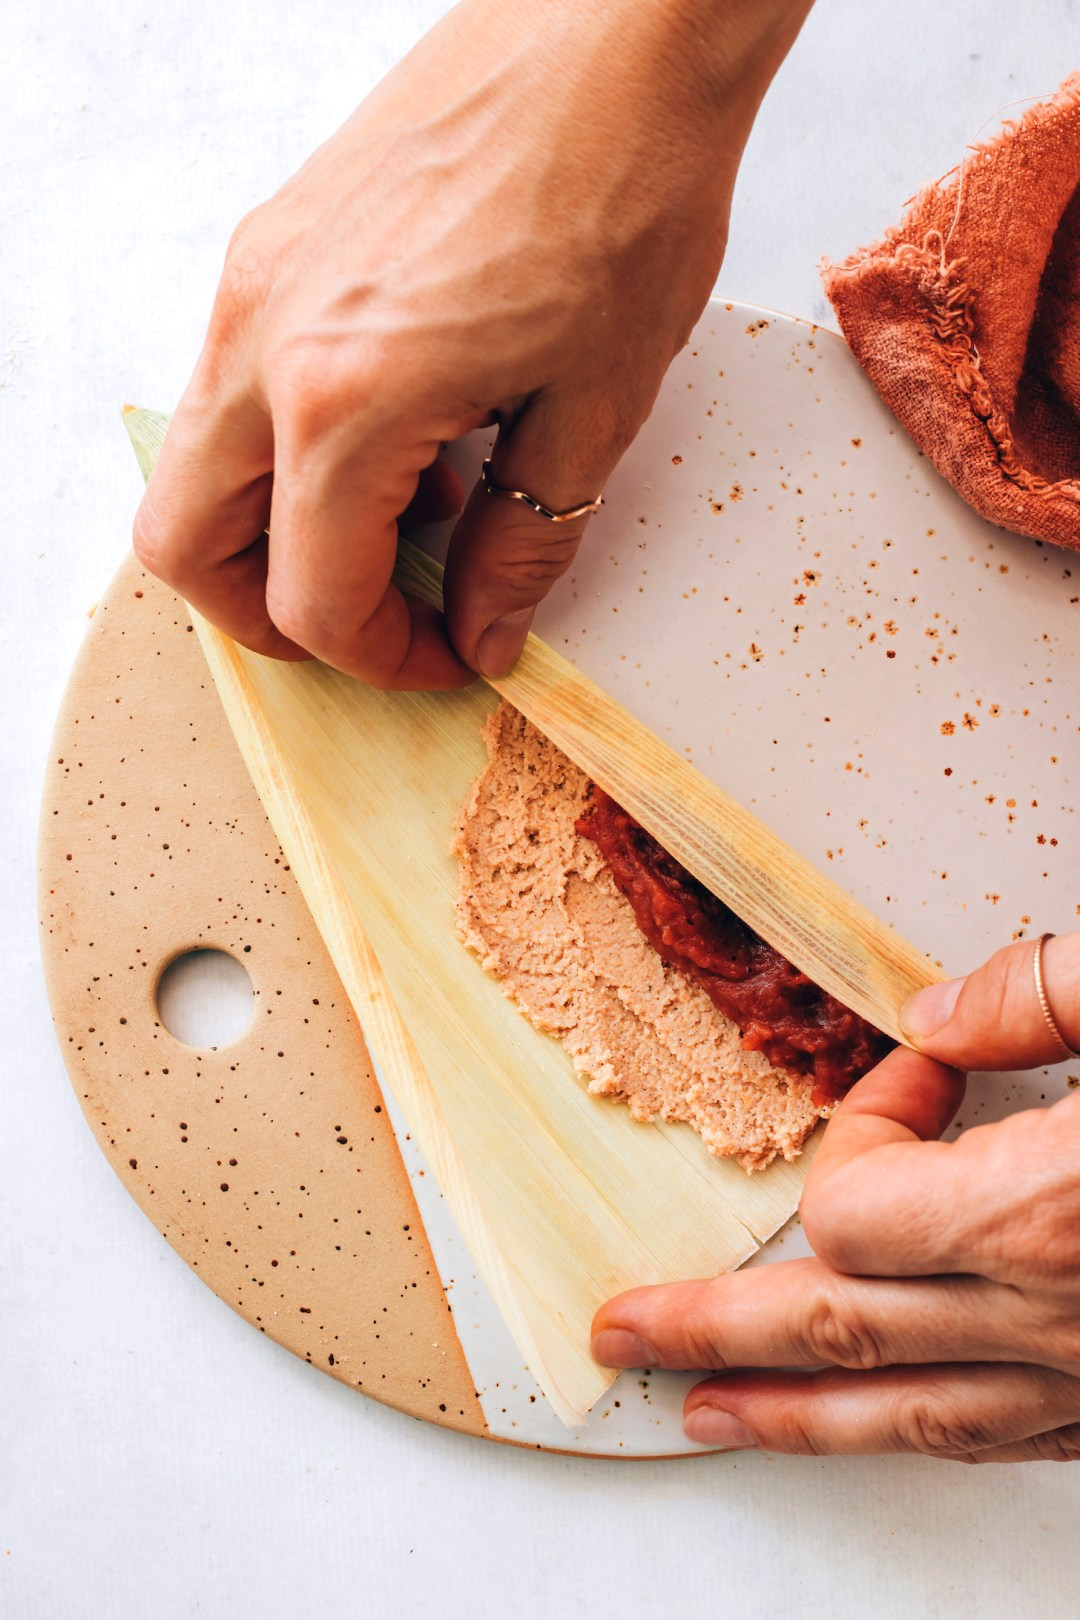 Folding a corn husk over masa filling and apple butter